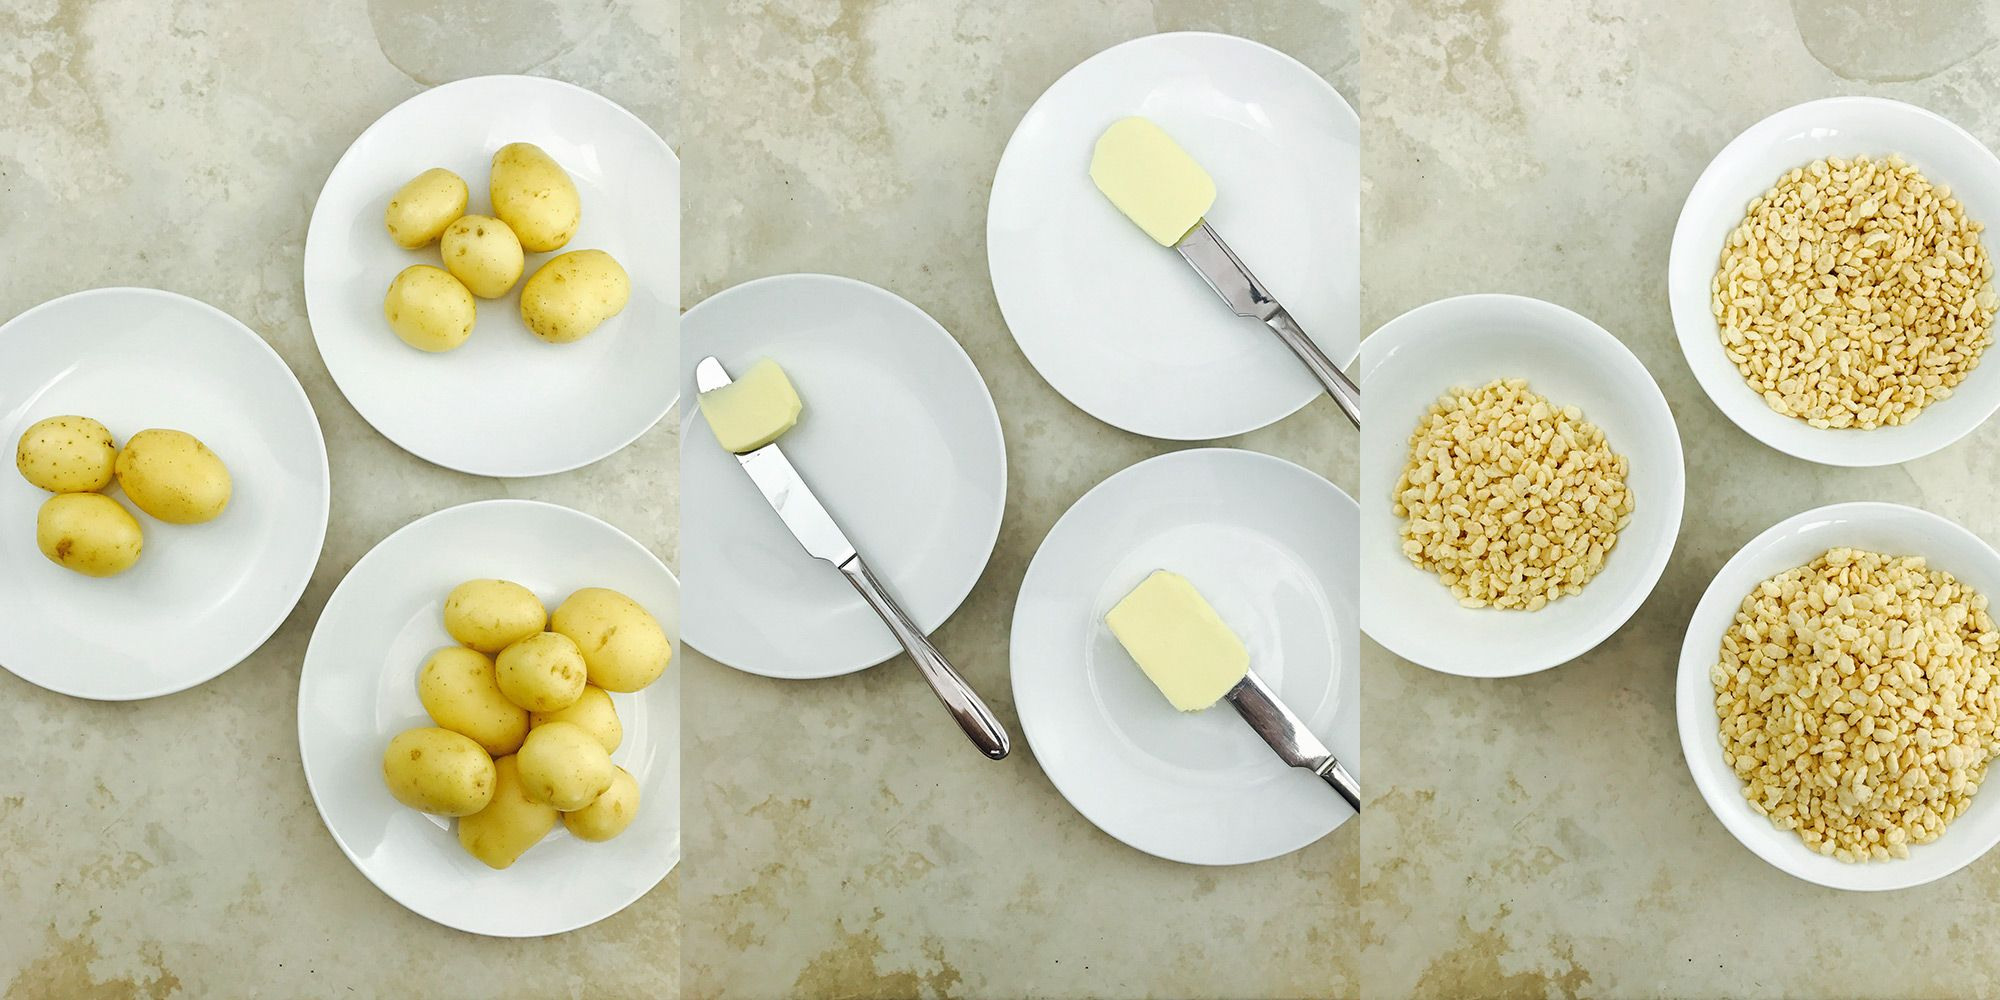 food portion sizes how much rice per person should we be eating and more